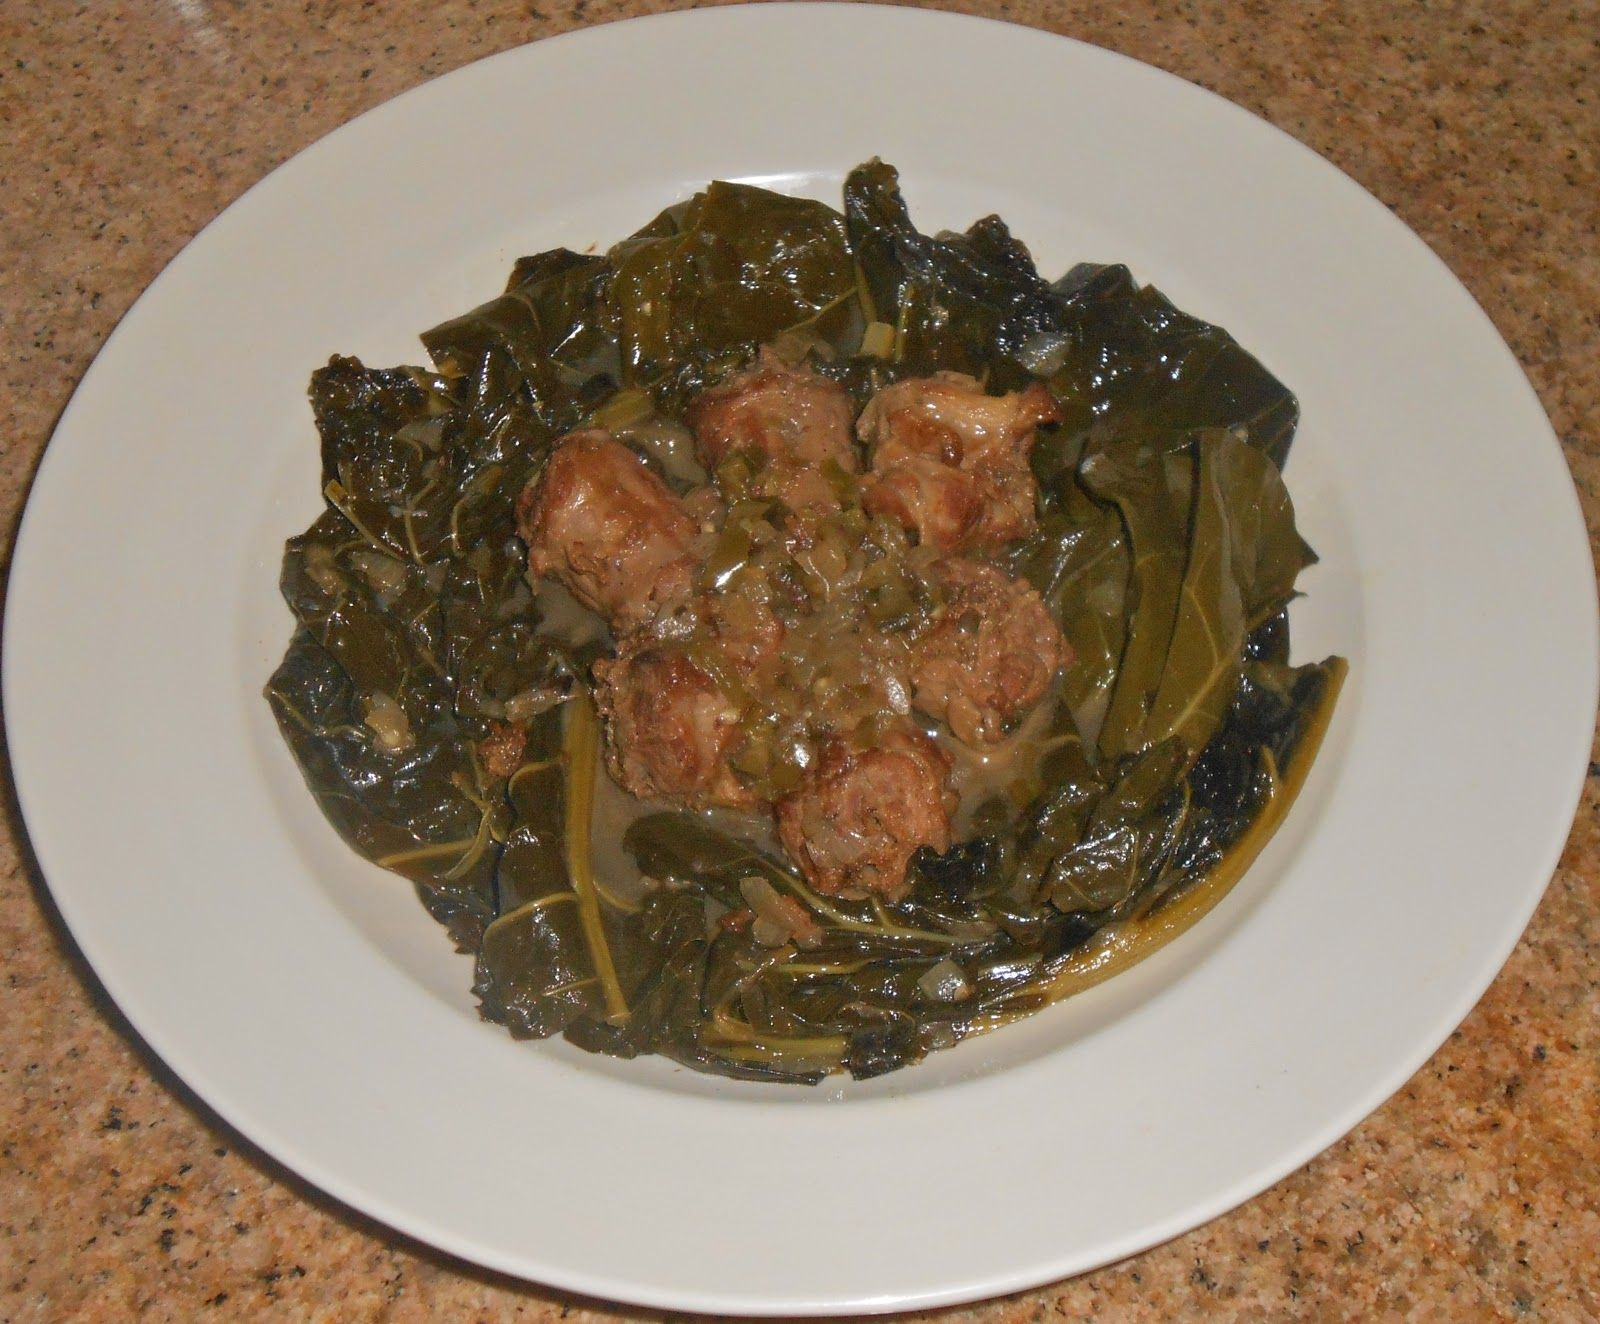 Old fashioned soul food recipes shawnas food and recipe blog old fashioned soul food recipes shawnas food and recipe blog collard greens and forumfinder Image collections